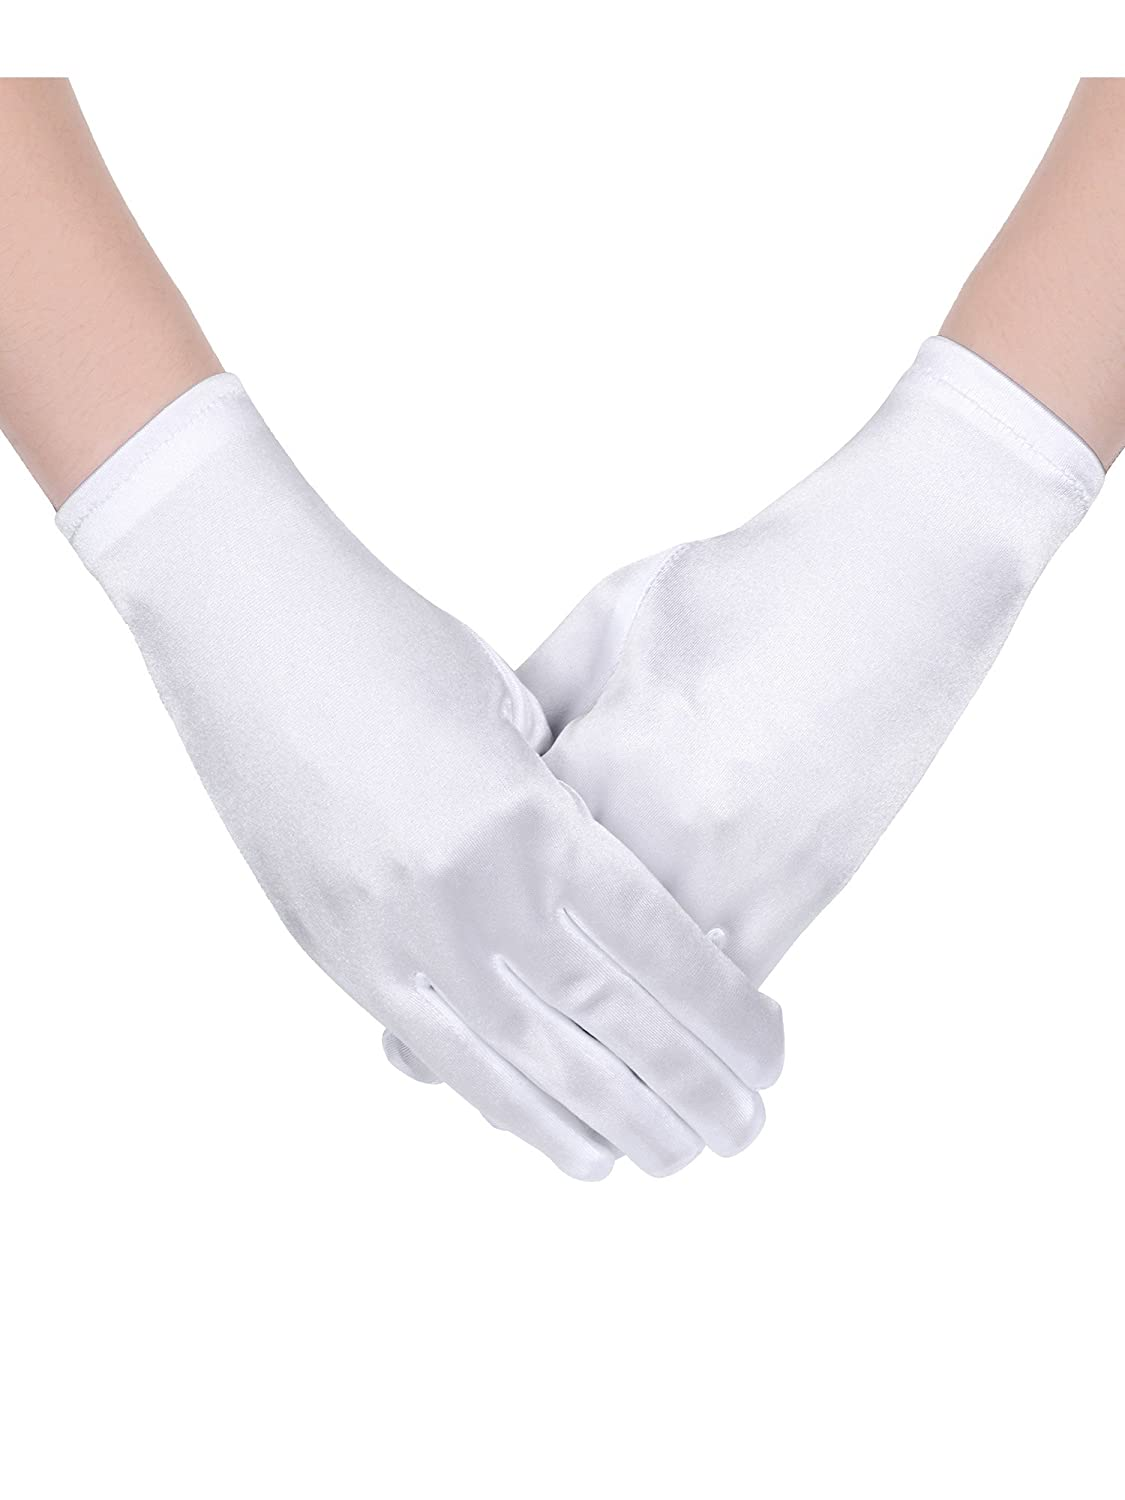 Vintage Style Gloves- Long, Wrist, Evening, Day, Leather, Lace Sumind Short Satin Gloves Wrist Length Gloves Womens Gown Gloves Opera Wedding Banquet Dress Glove for Party Dance $6.99 AT vintagedancer.com